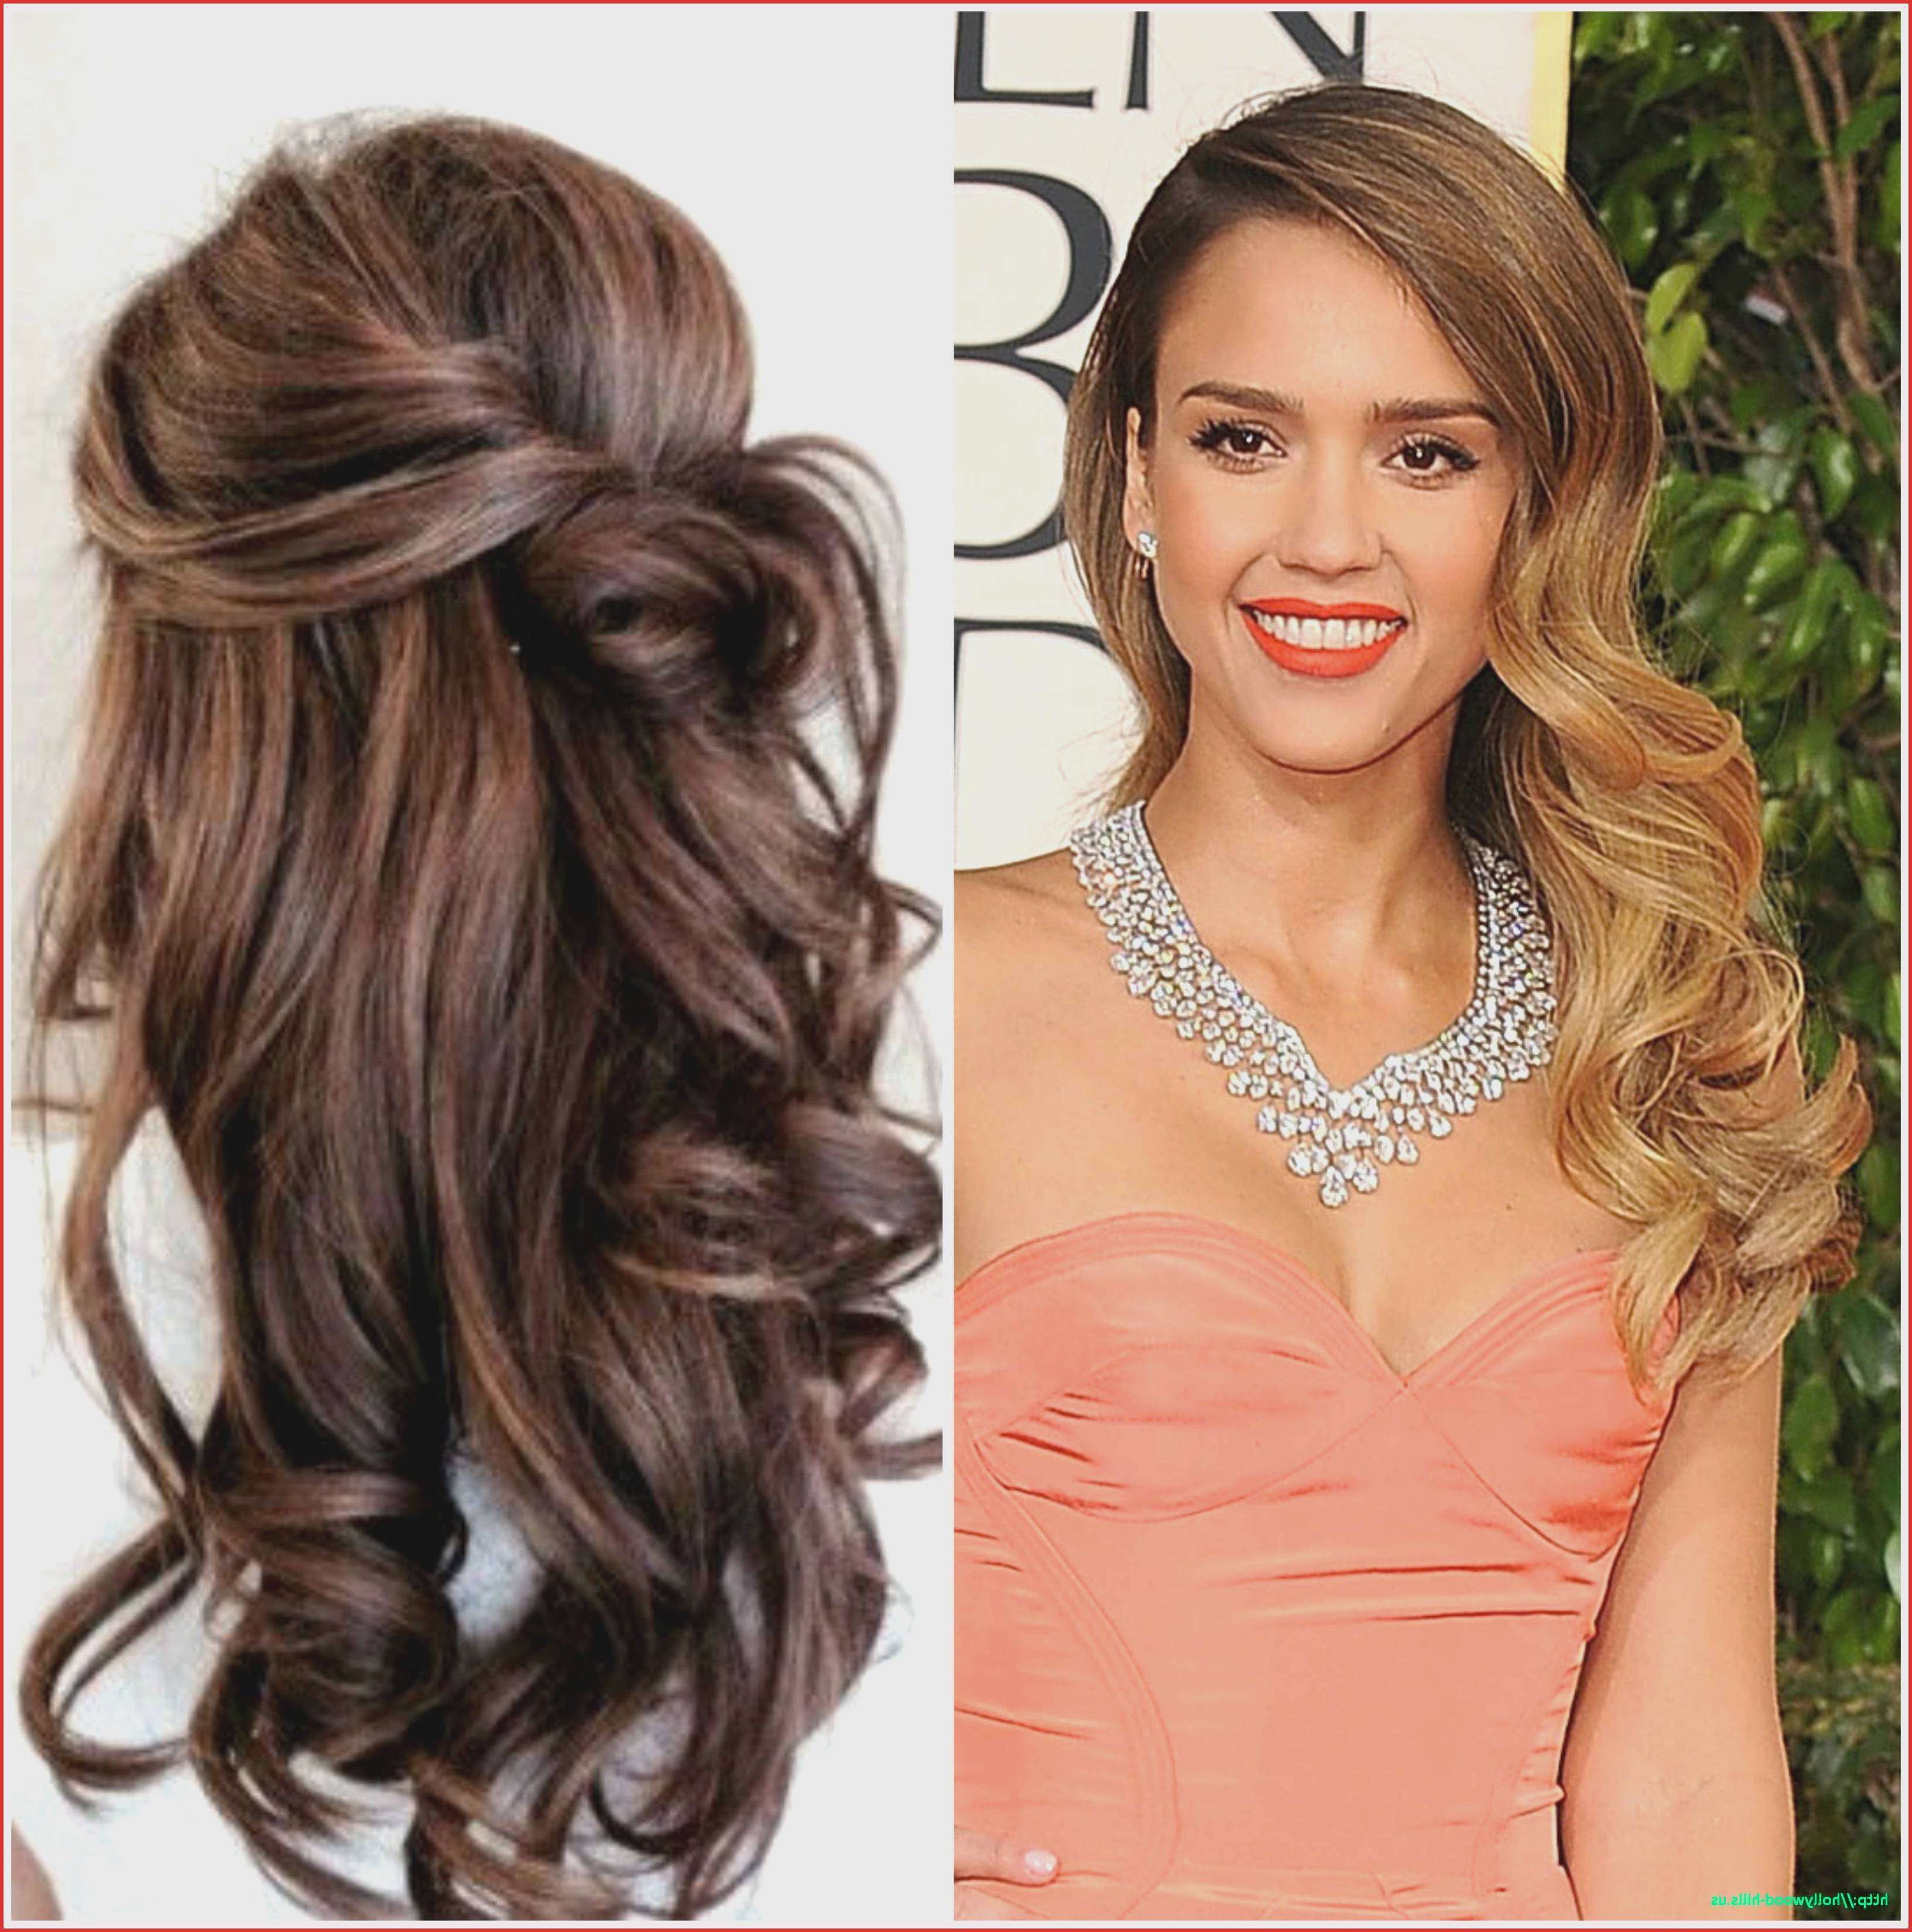 Cute Hairstyles For Kids With Short Hair Elegant Beautiful Regarding Cute Hairstyles For Girls With Short Hair (View 23 of 25)